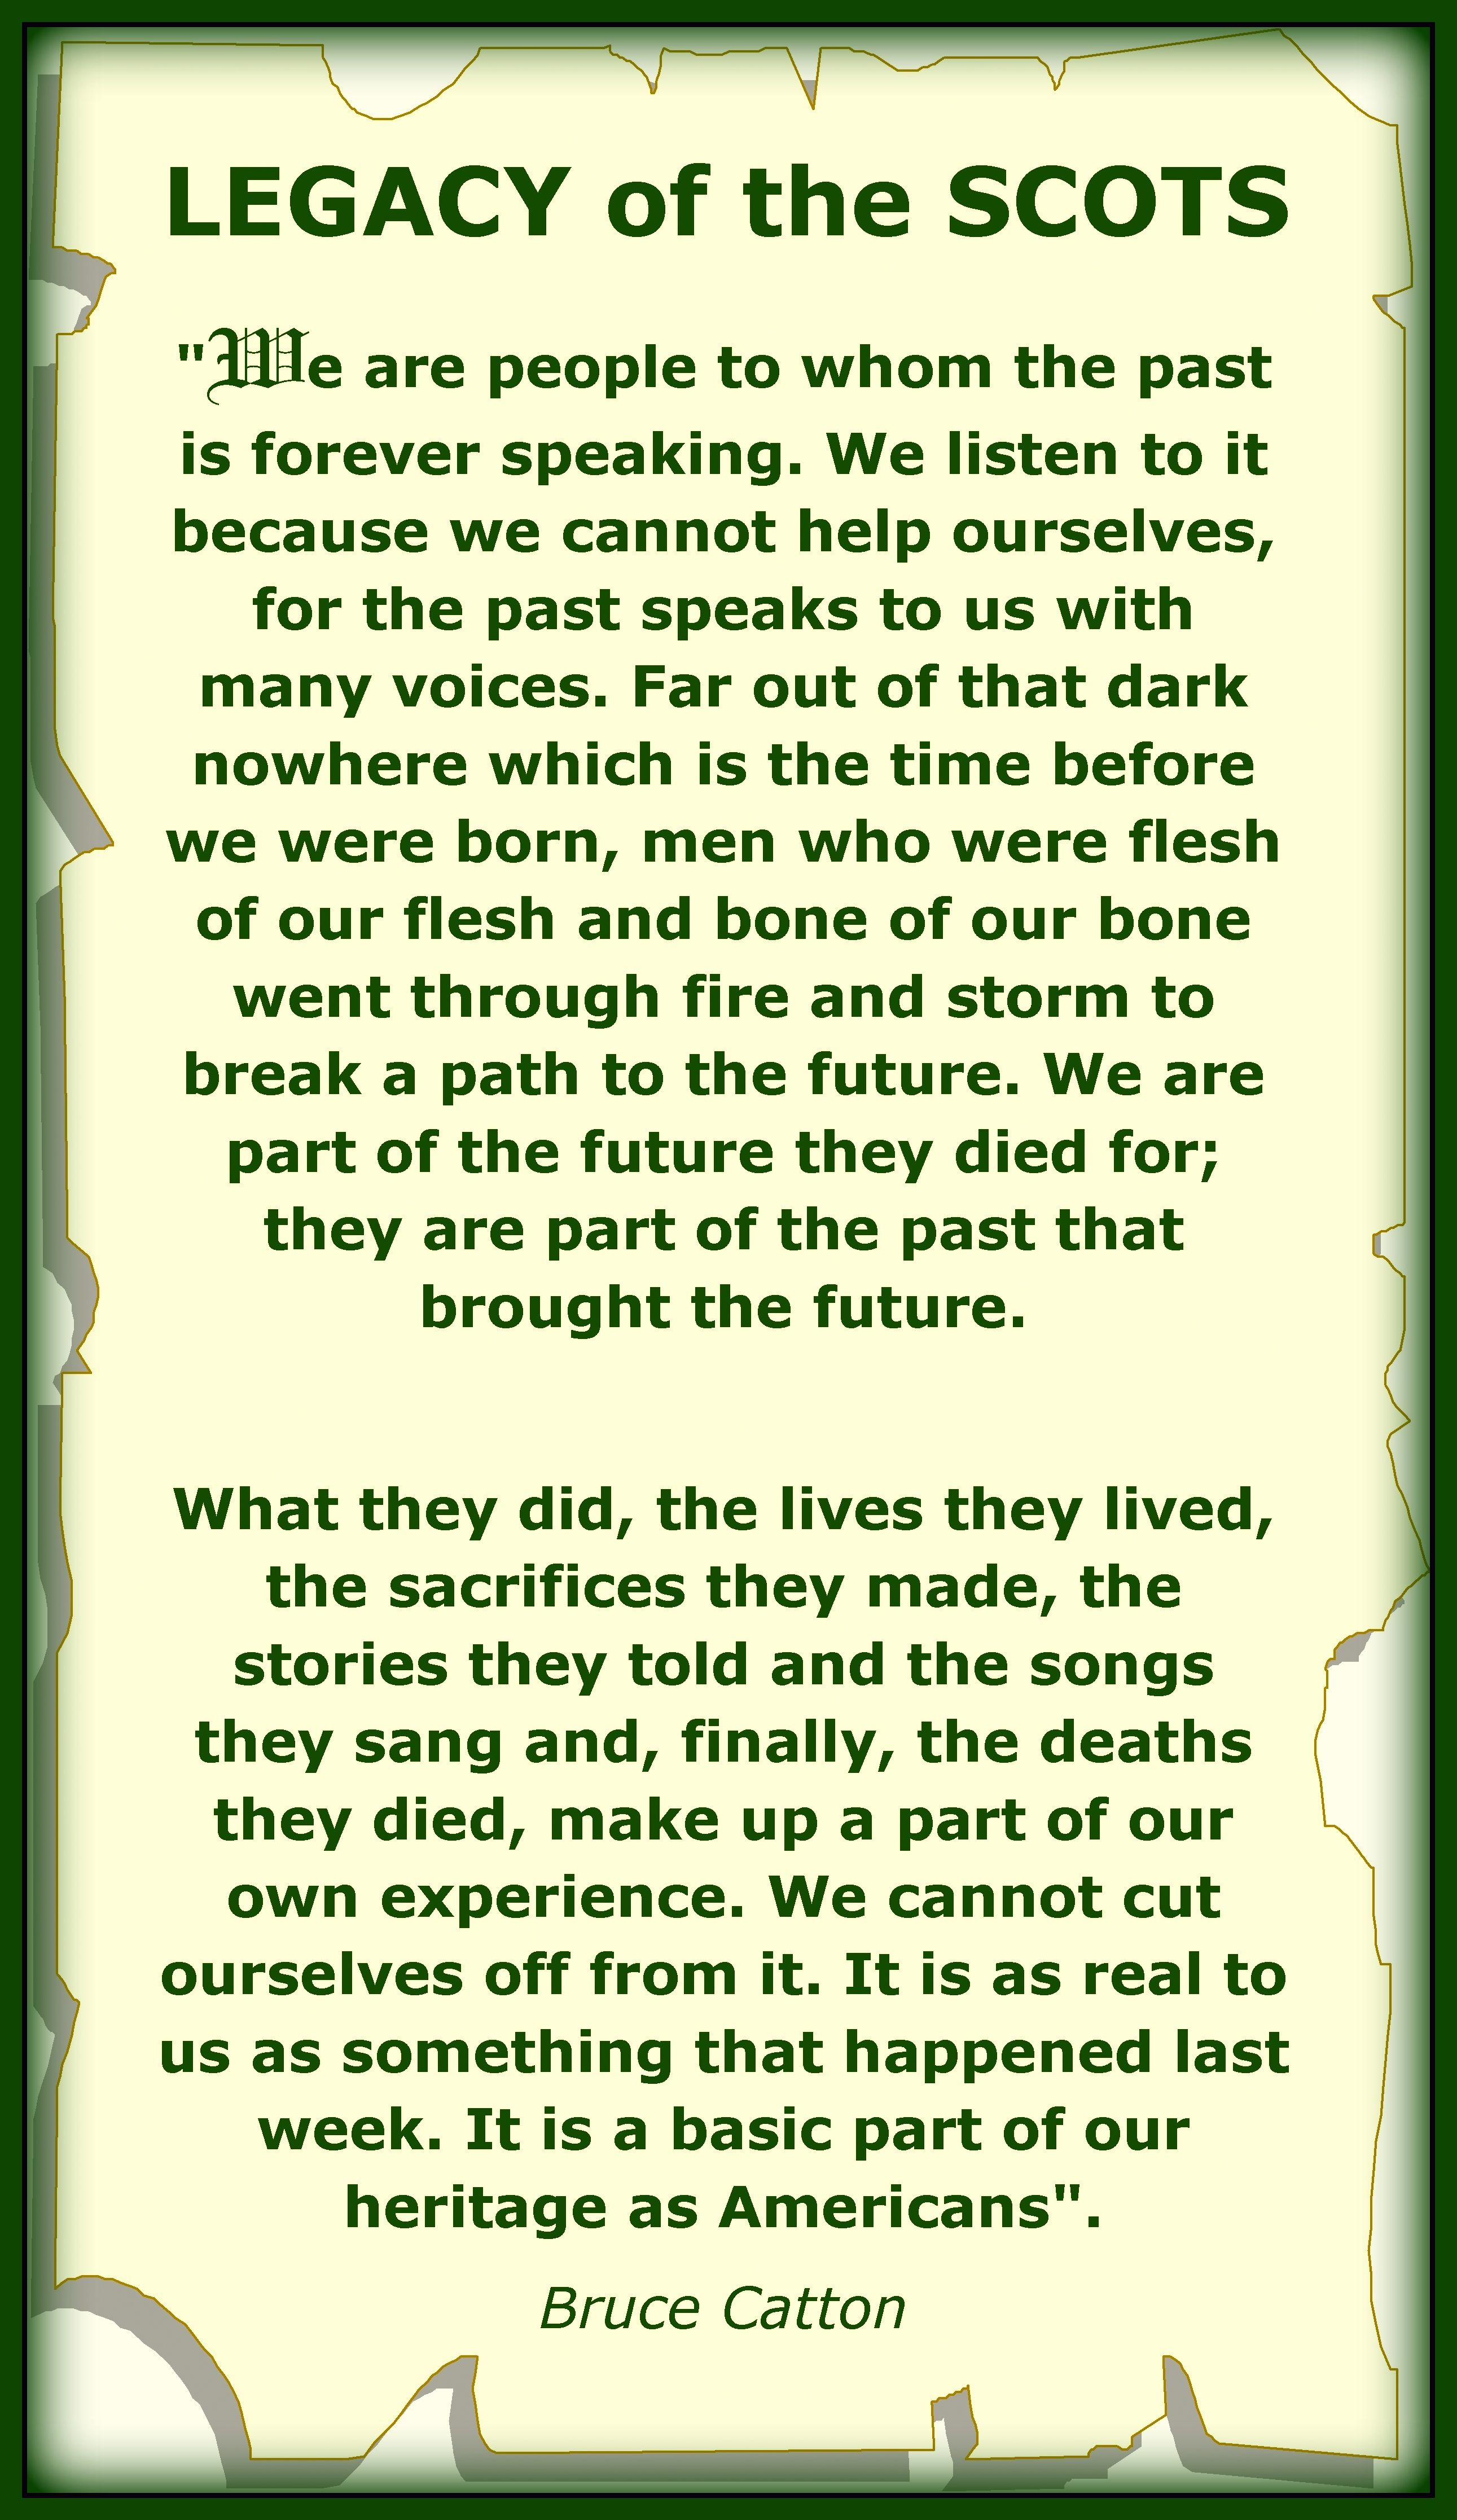 Legacy of the scots scotland pinterest scotland genealogy and as americans somewhere sometime you came from immigrants and there is no prouder nation than the nation of scotland who gave america some of their best men kristyandbryce Choice Image